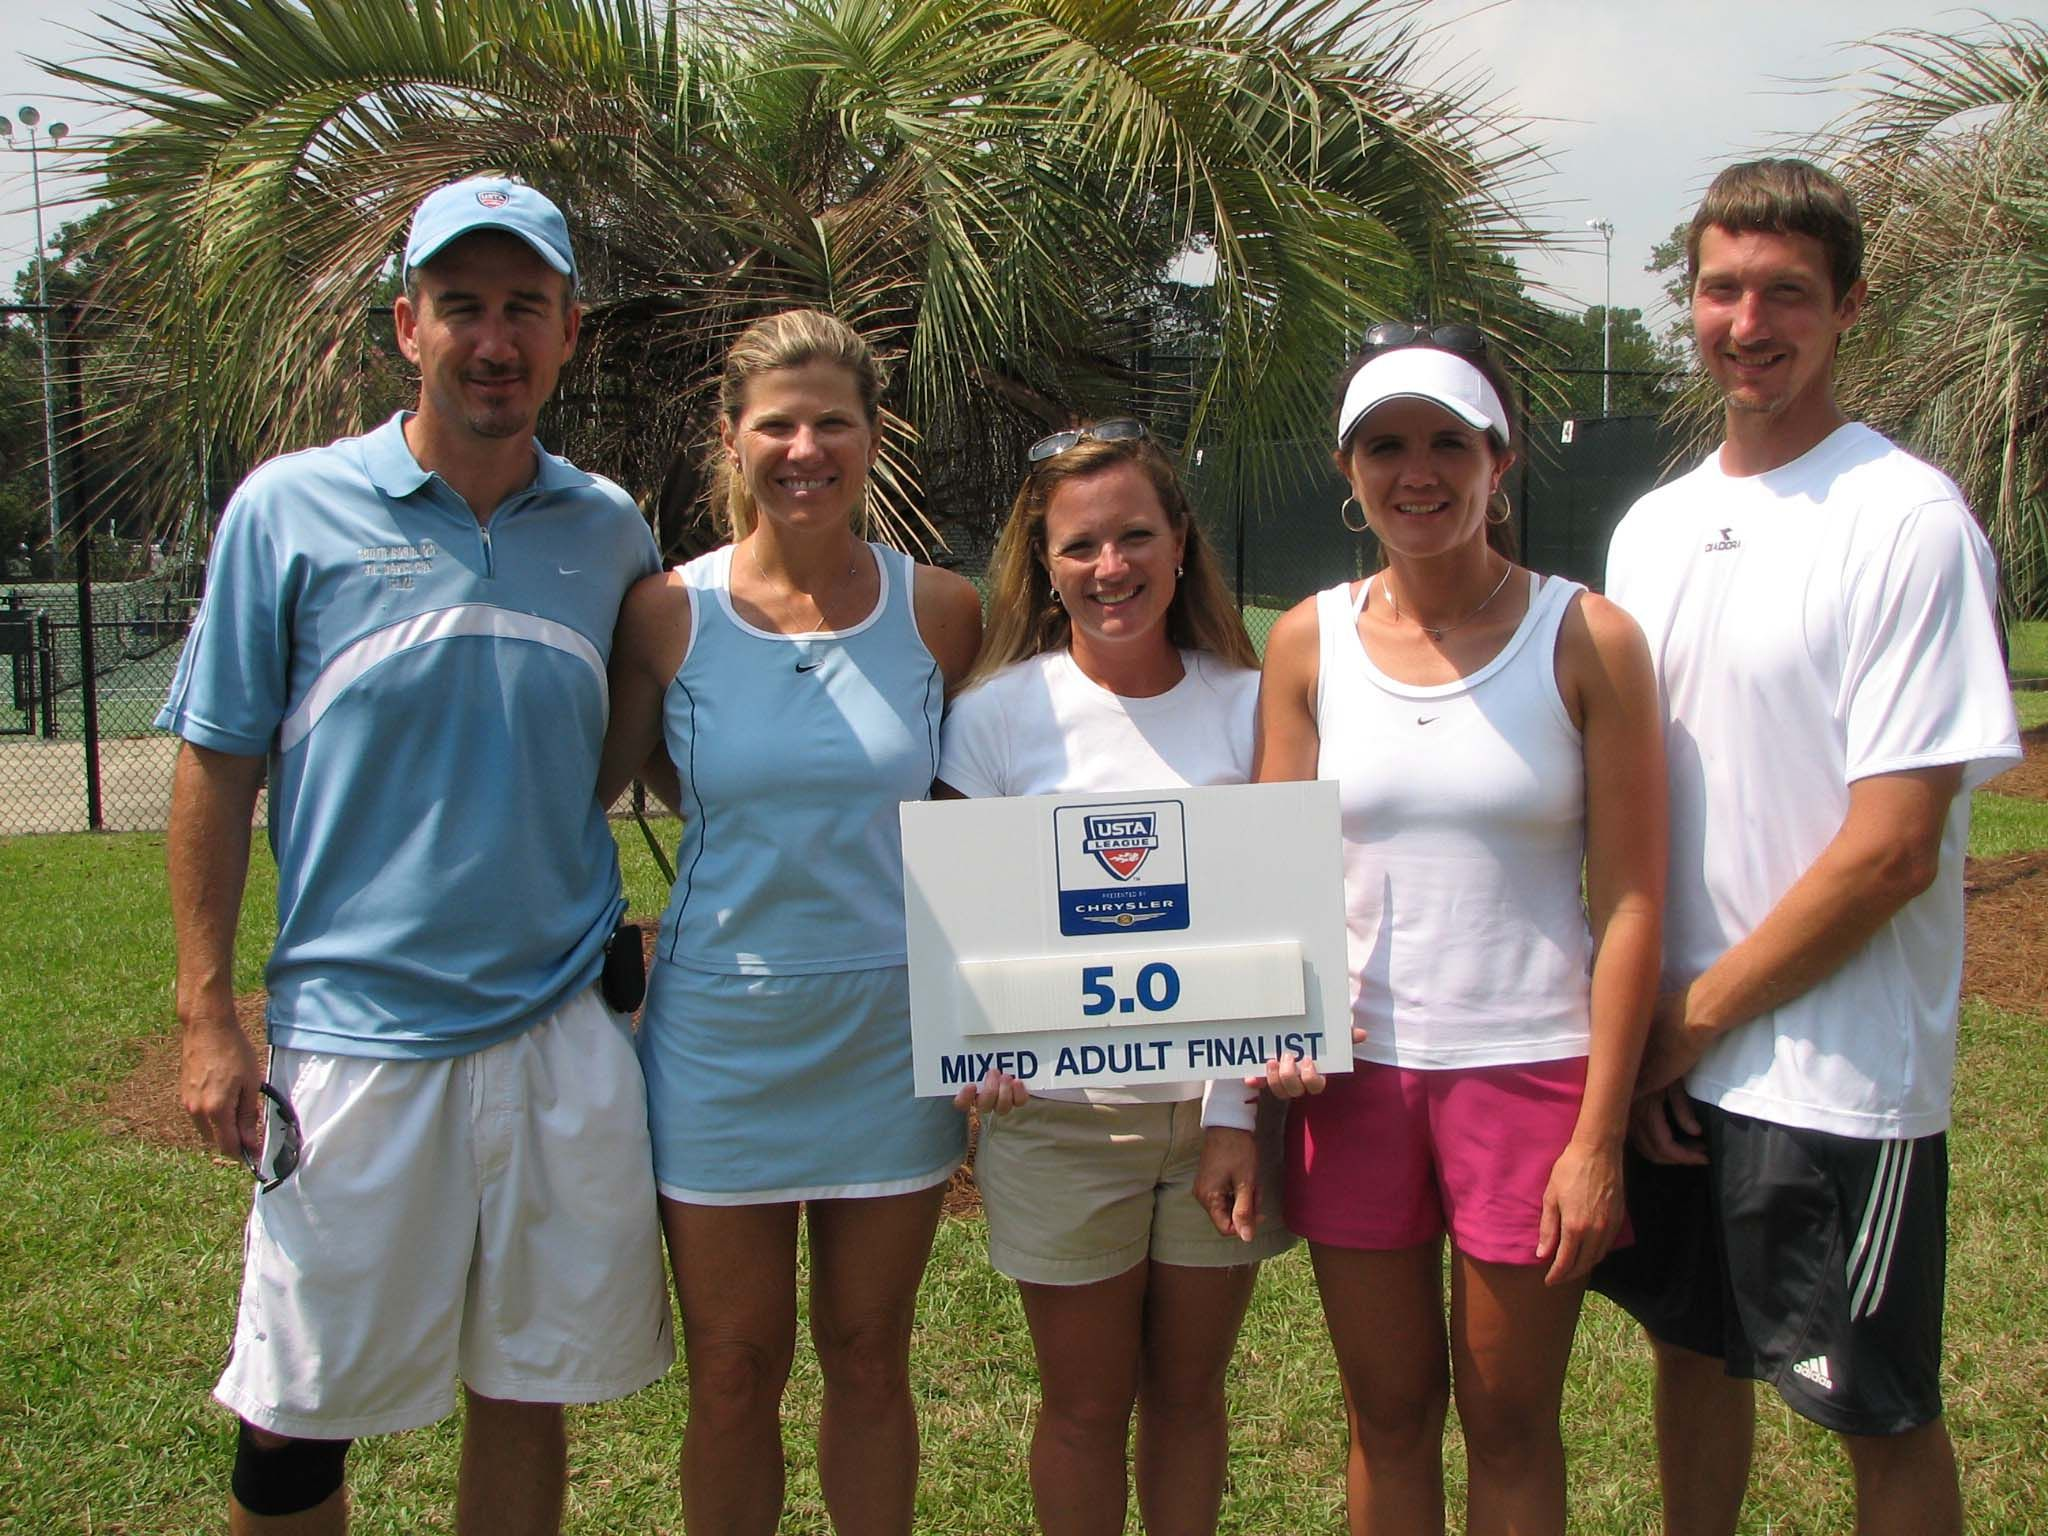 2006 Mixed 5.0 Adult Finalist